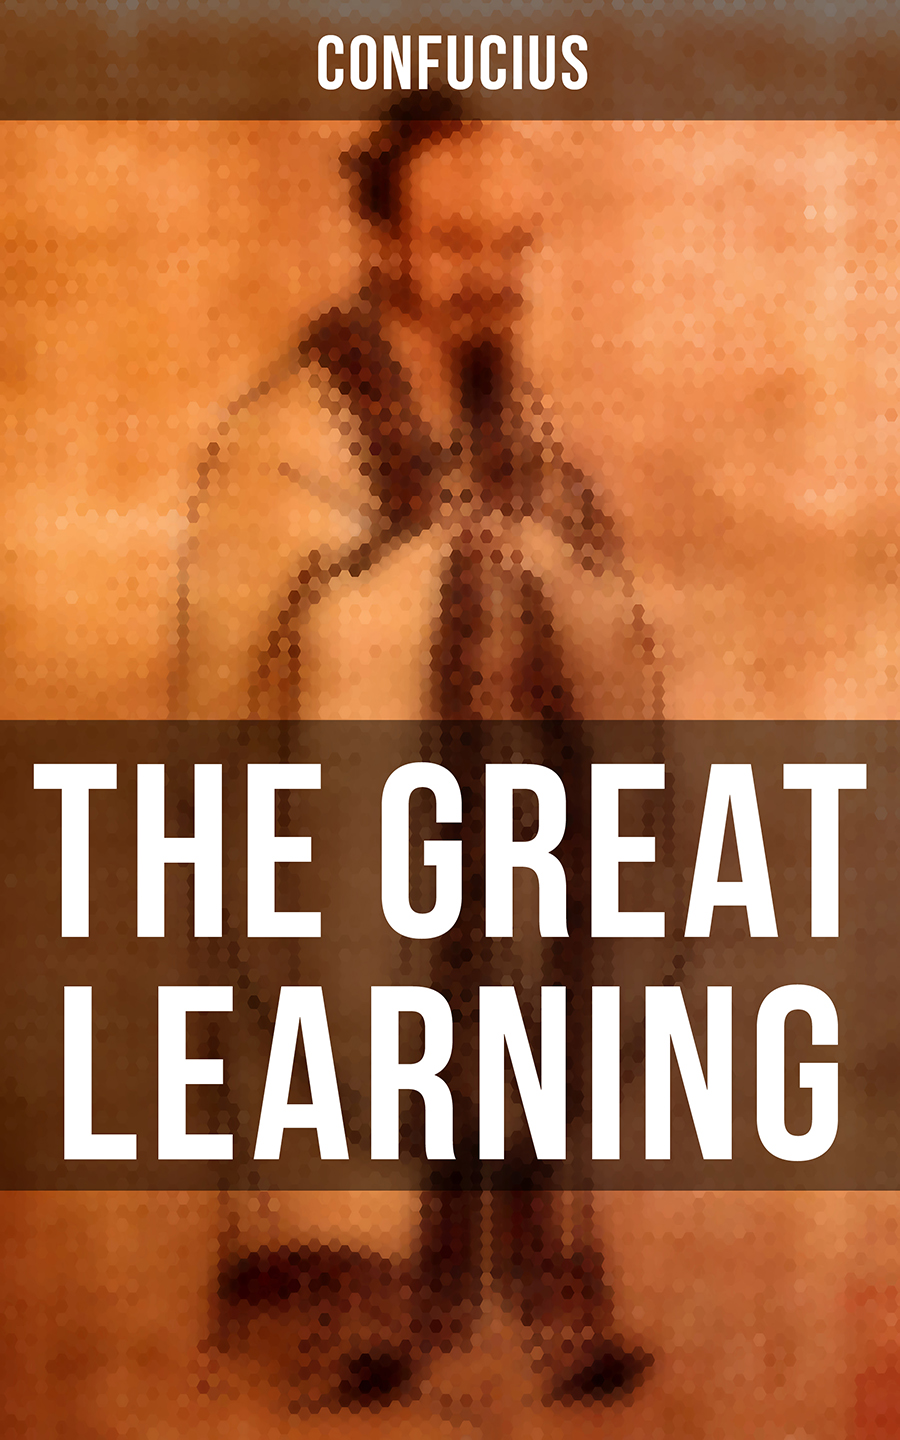 Confucius THE GREAT LEARNING confucius confucius the great learning